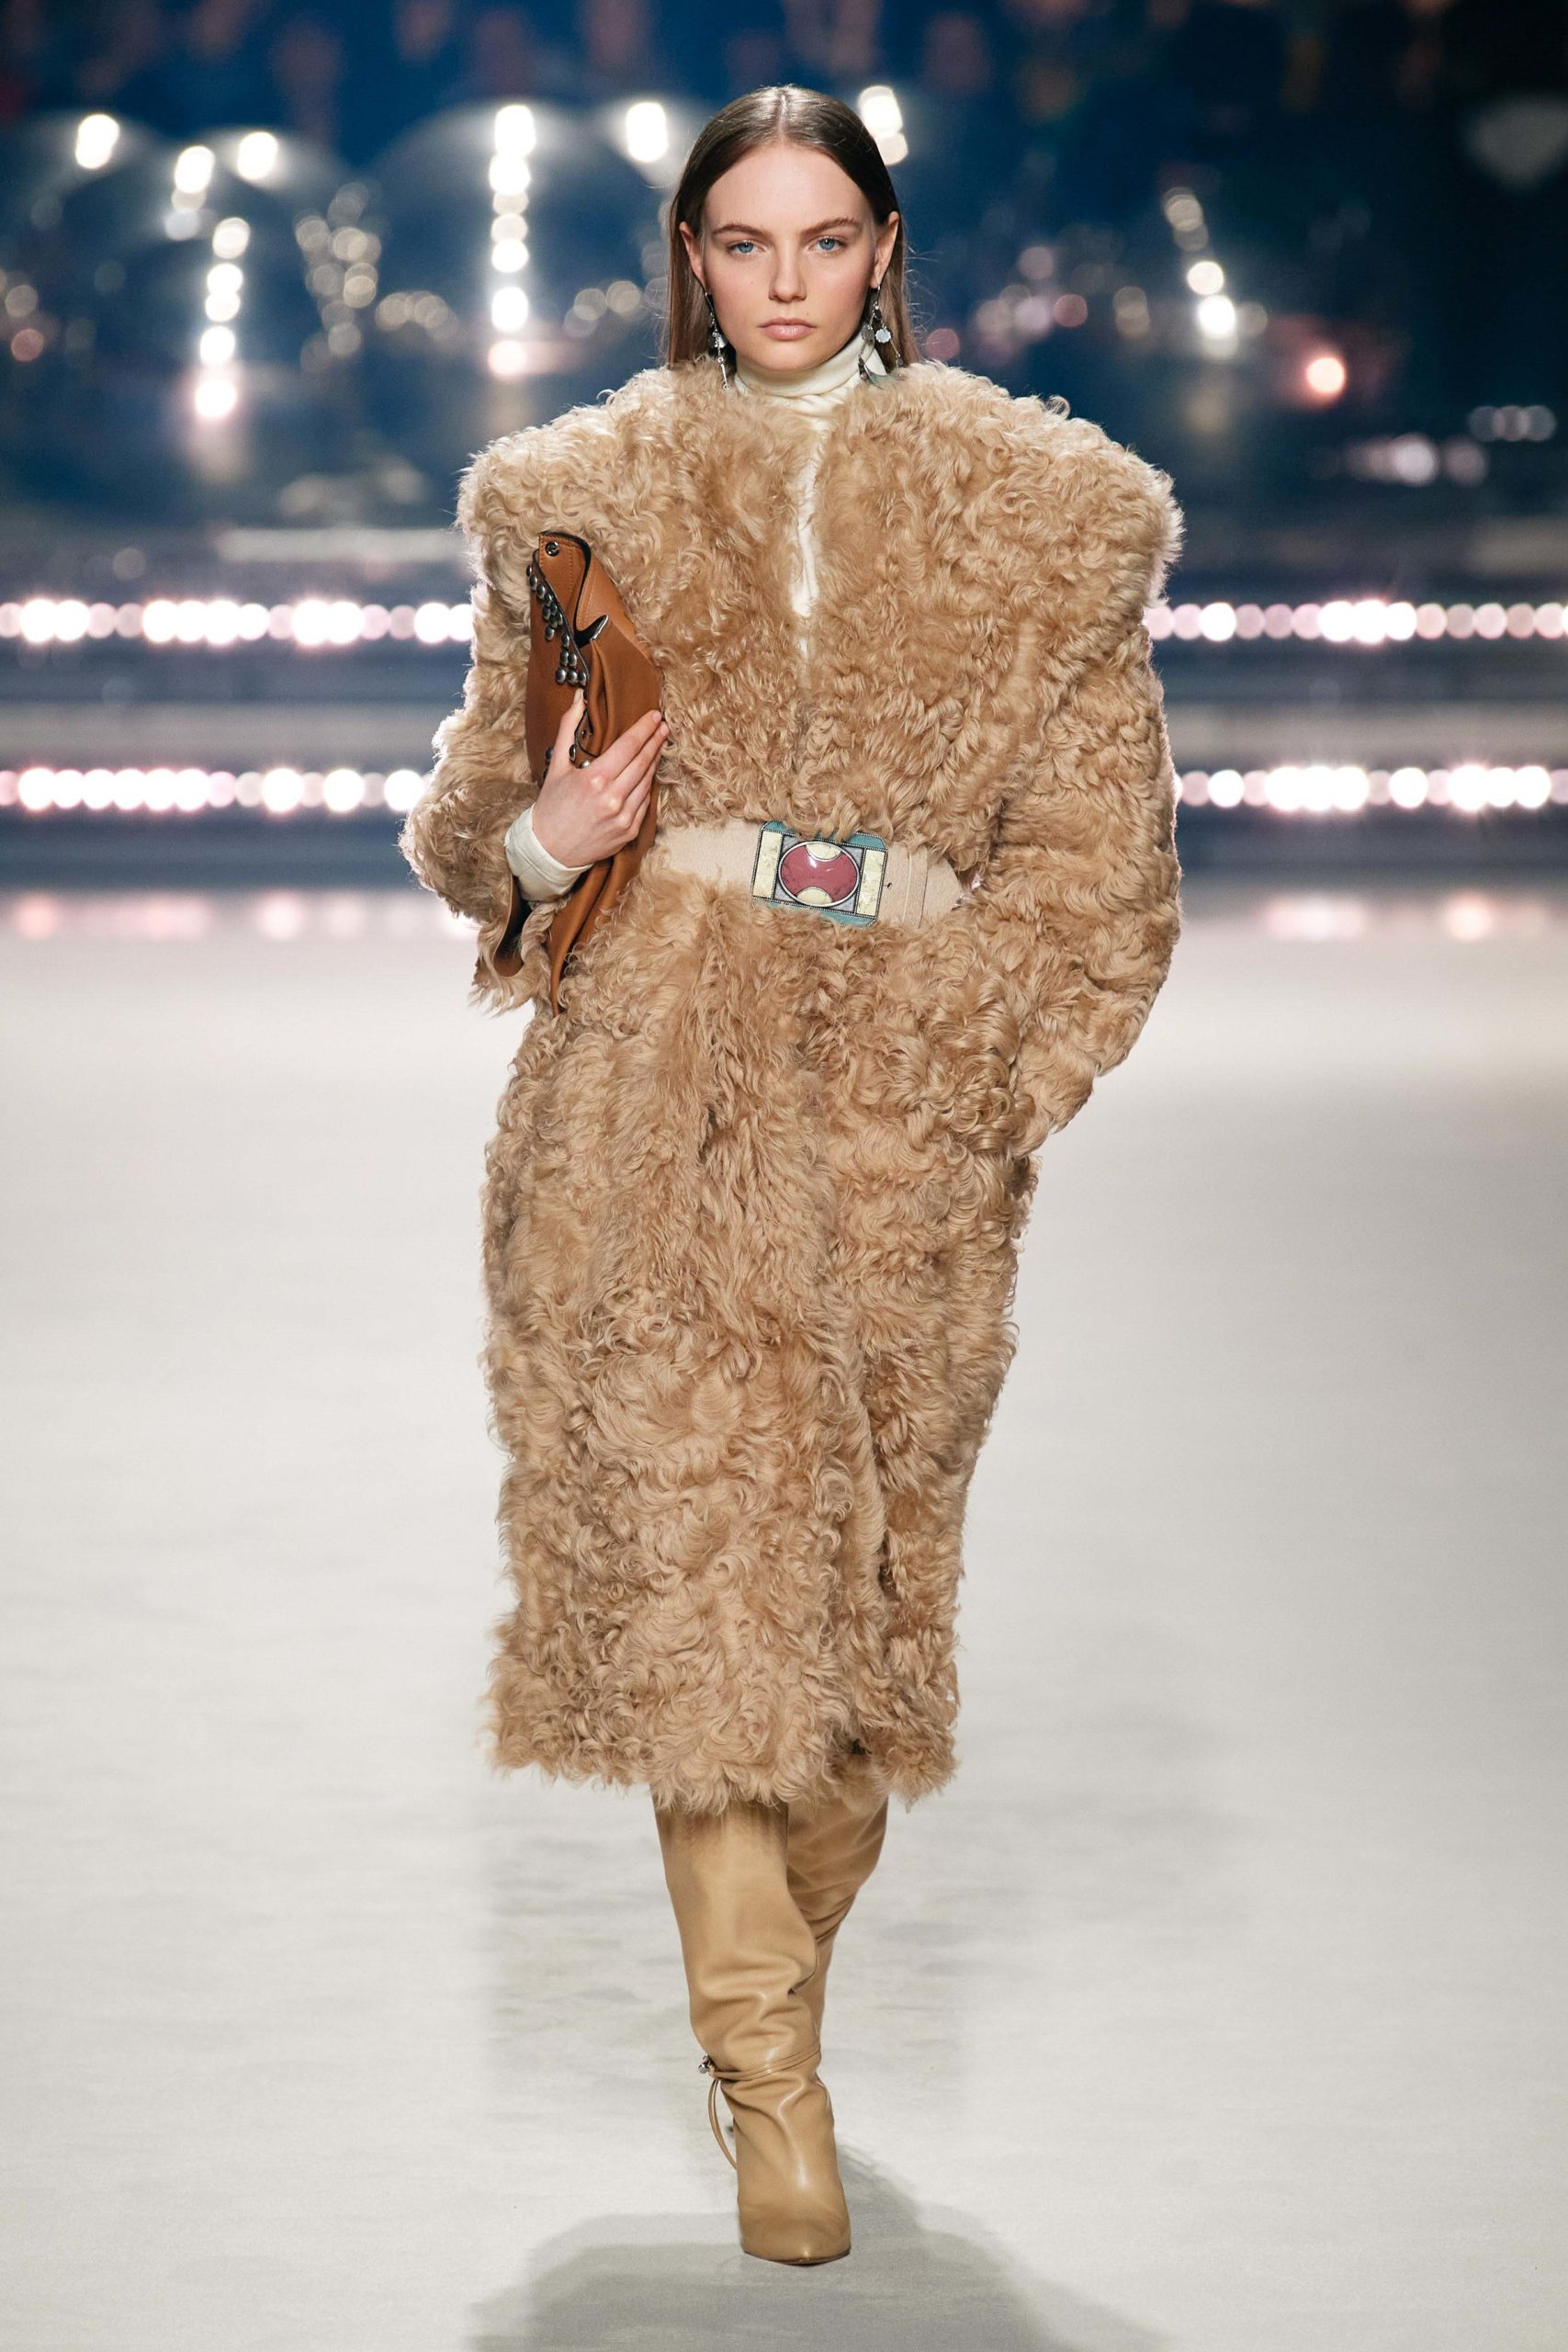 Isabel Marant Fall 2020 trends runway coverage Ready To Wear Vogue shaggy